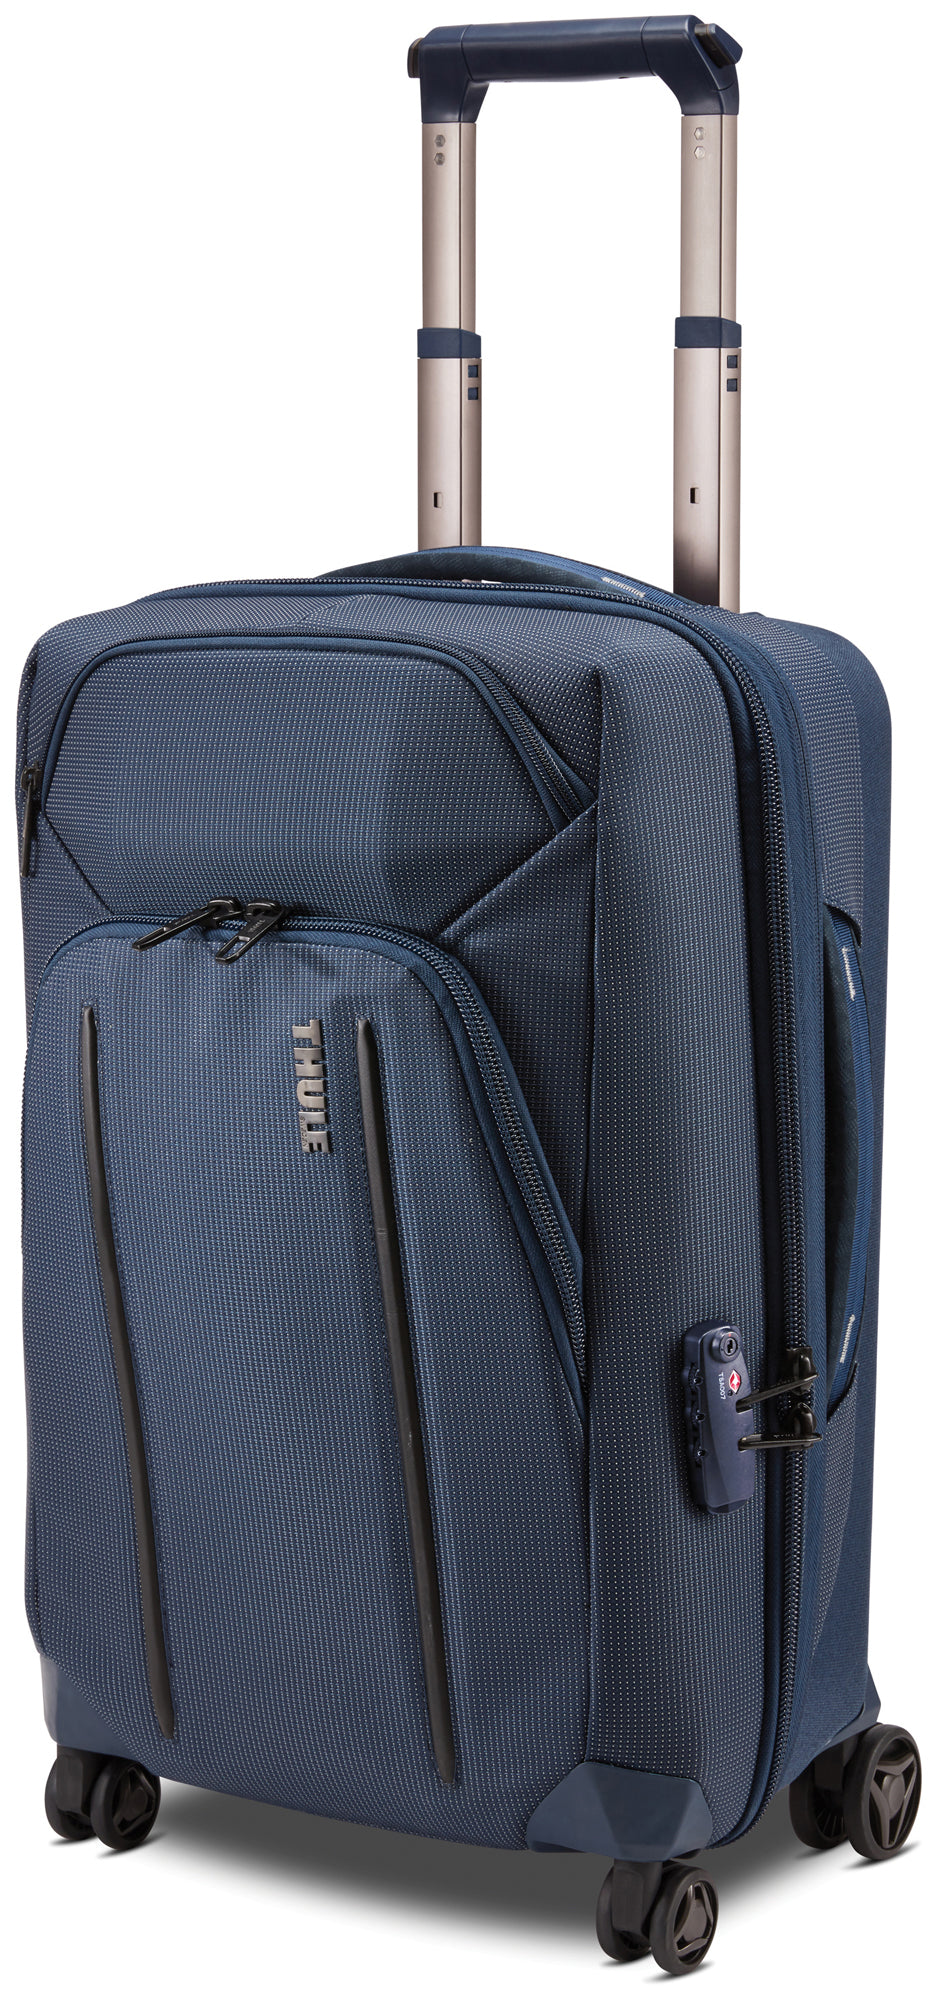 Thule Crossover 2 Spinner Carry-On